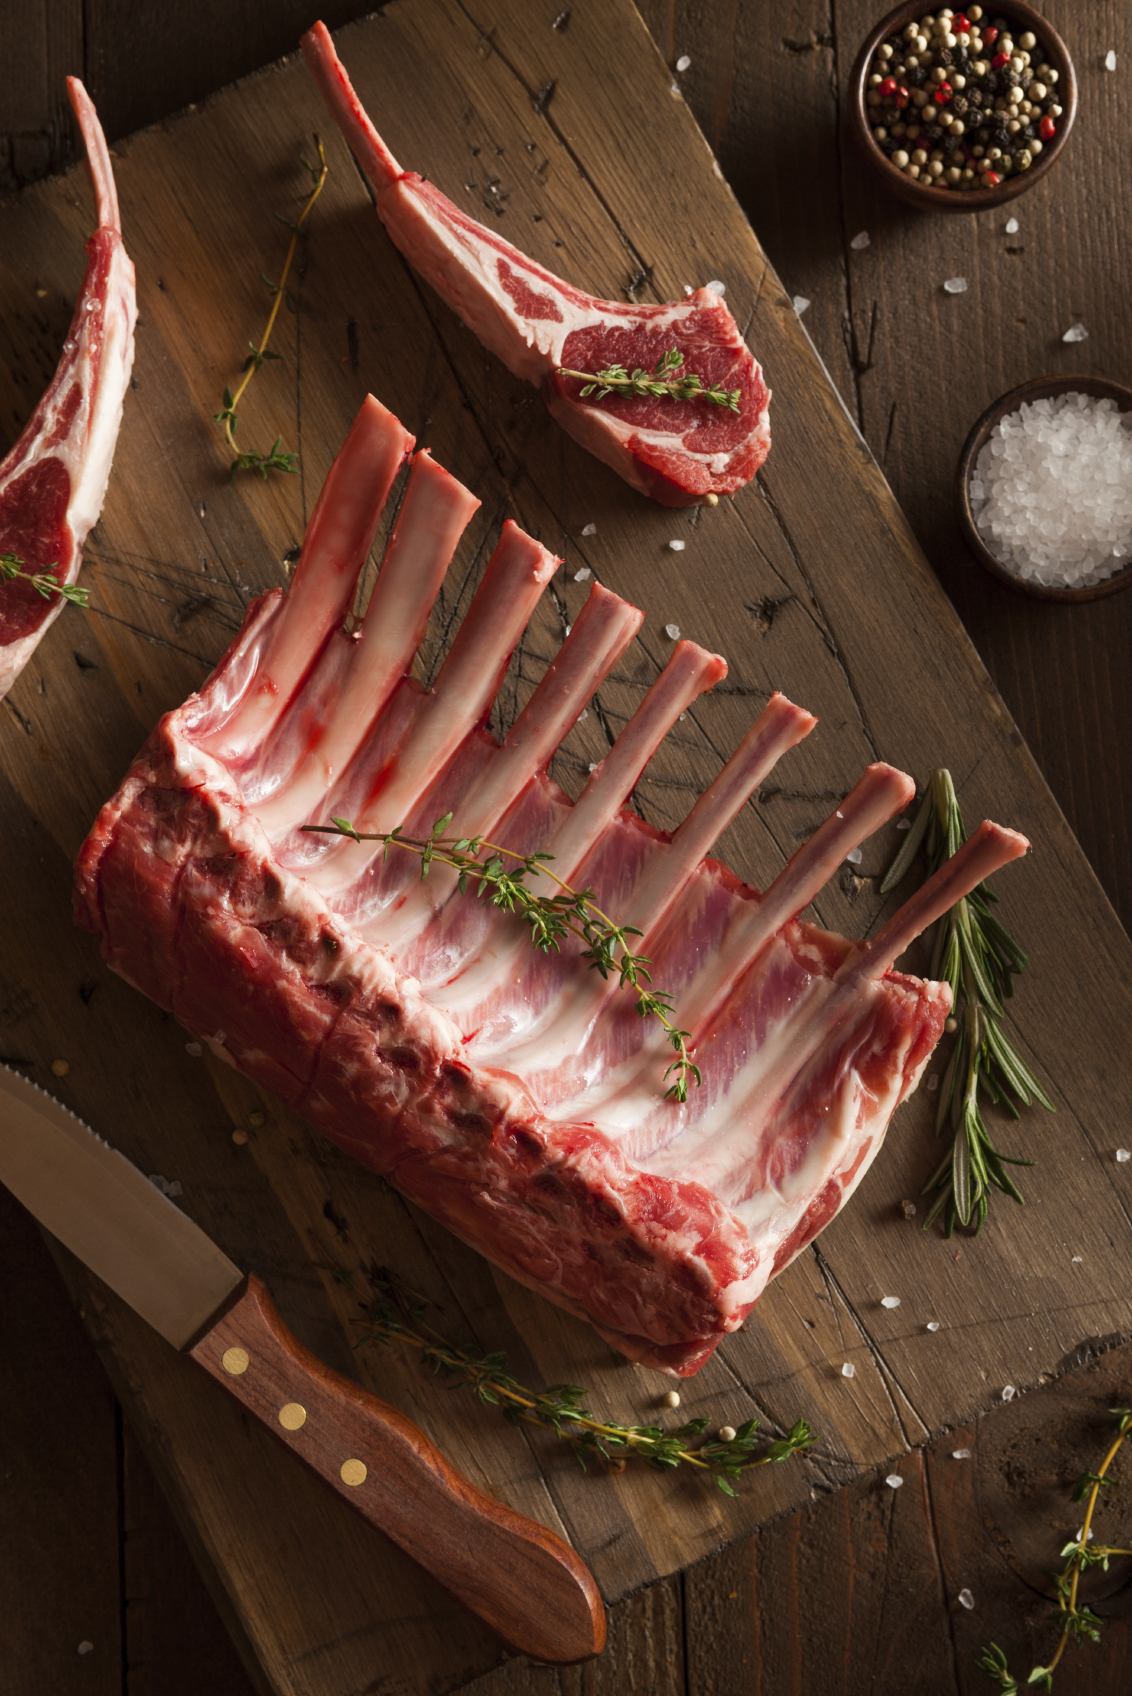 LAMB RACK - Our grass fed lamb is ethically raised and comes from locally in Western Australia. This is an amazingly succulent and tender cut, renowned for its rich flavour and presentable appearance when served. Traditionally it is roasted whole or cut into cutlets.